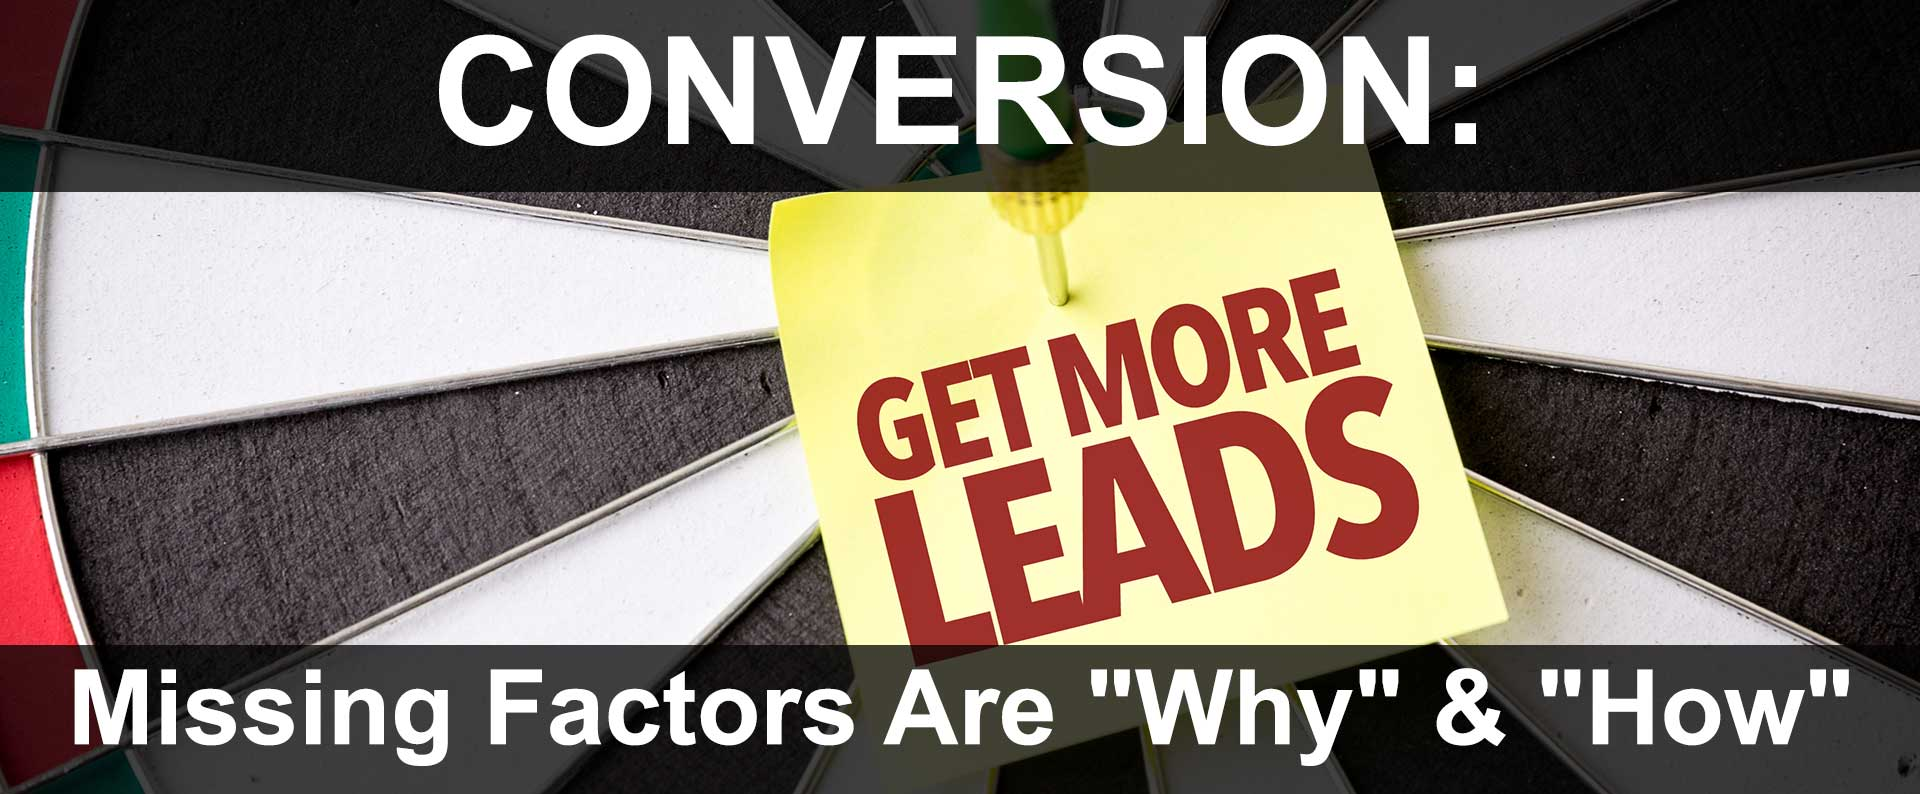 Converting Online Visitors to Sales